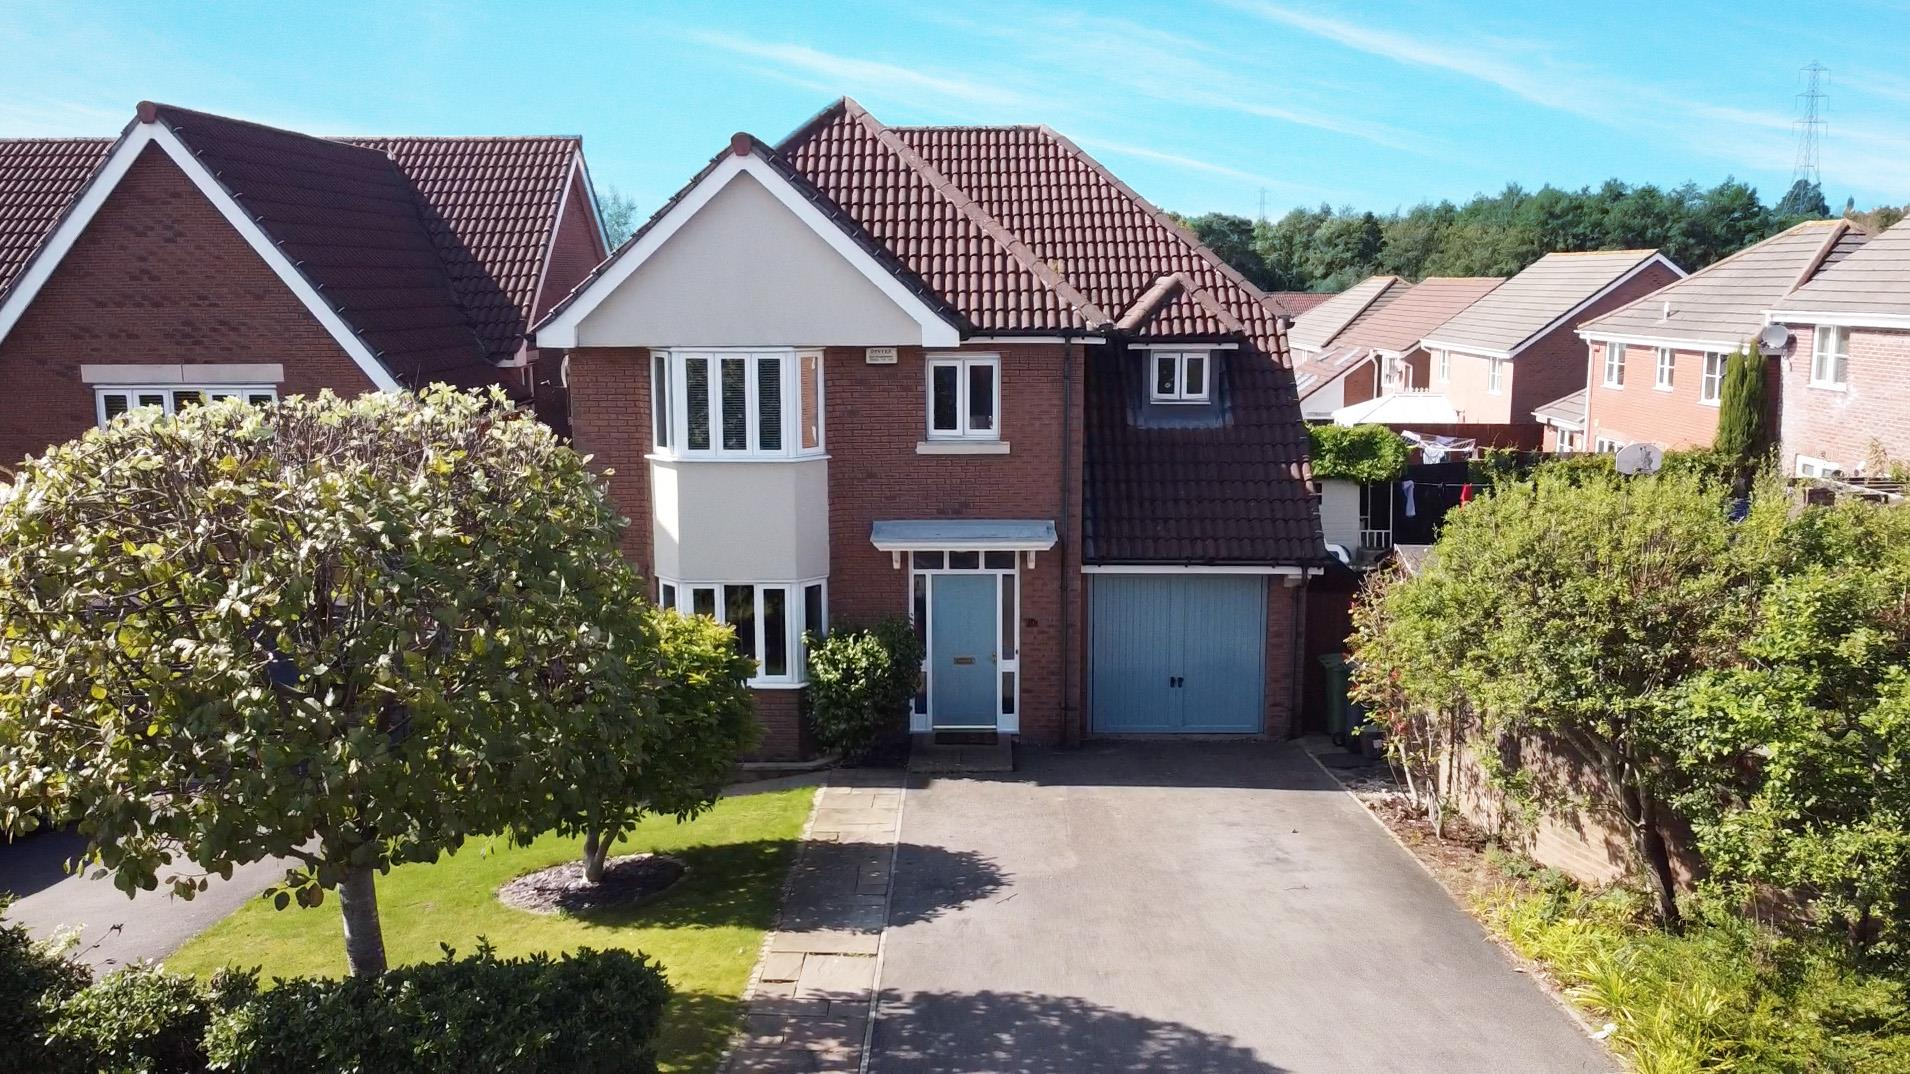 4 bed detached house for sale in Old Mill Drive, Cardiff  - Property Image 3